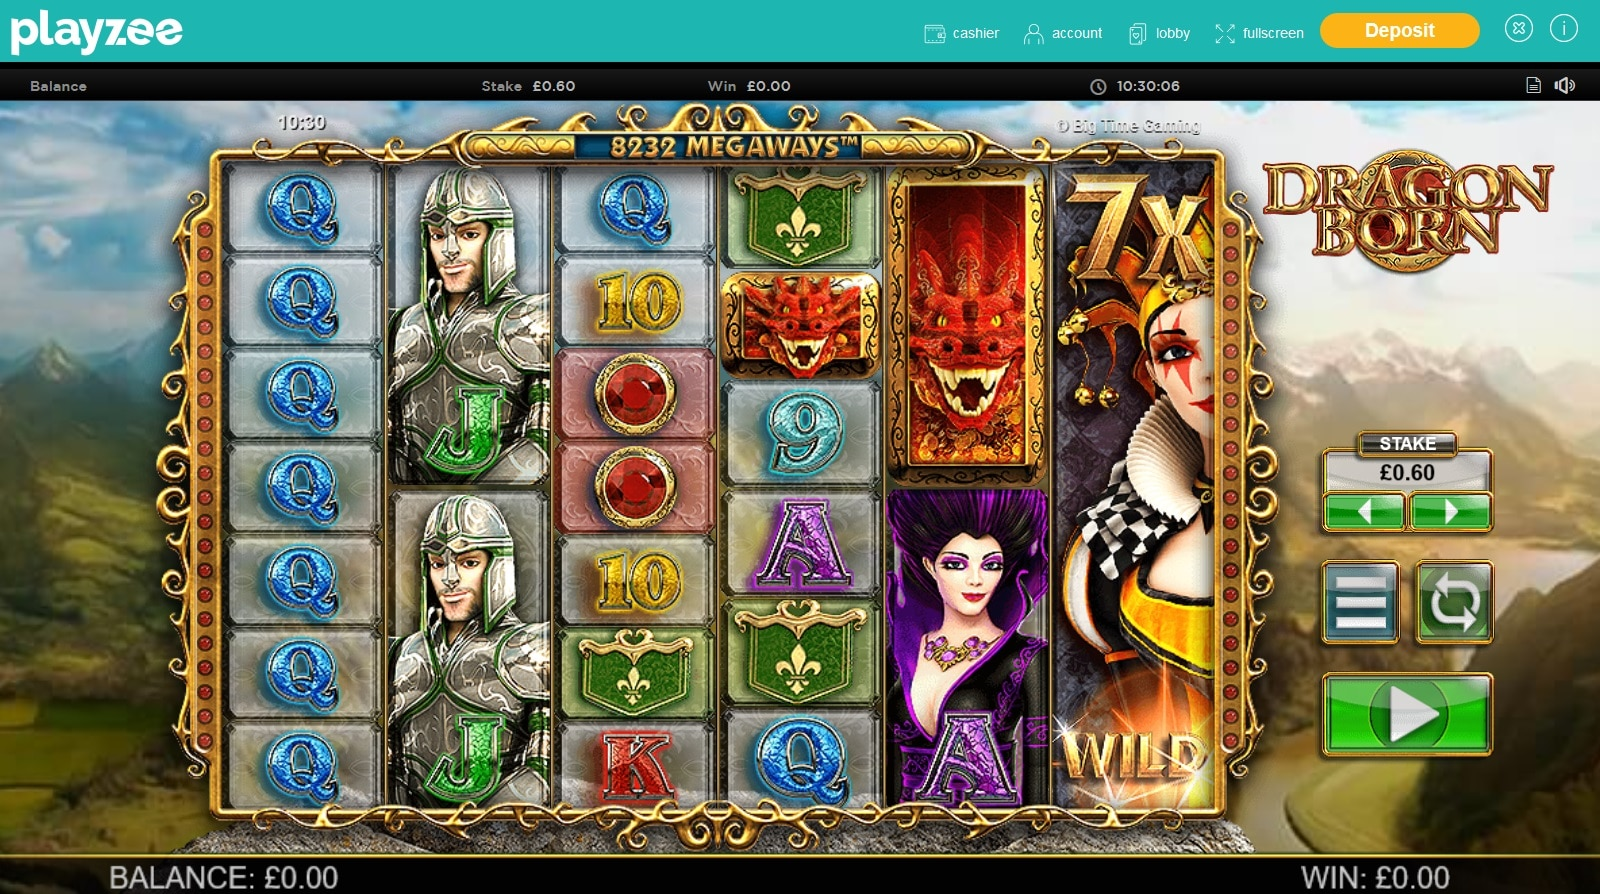 playzee casino gameplay